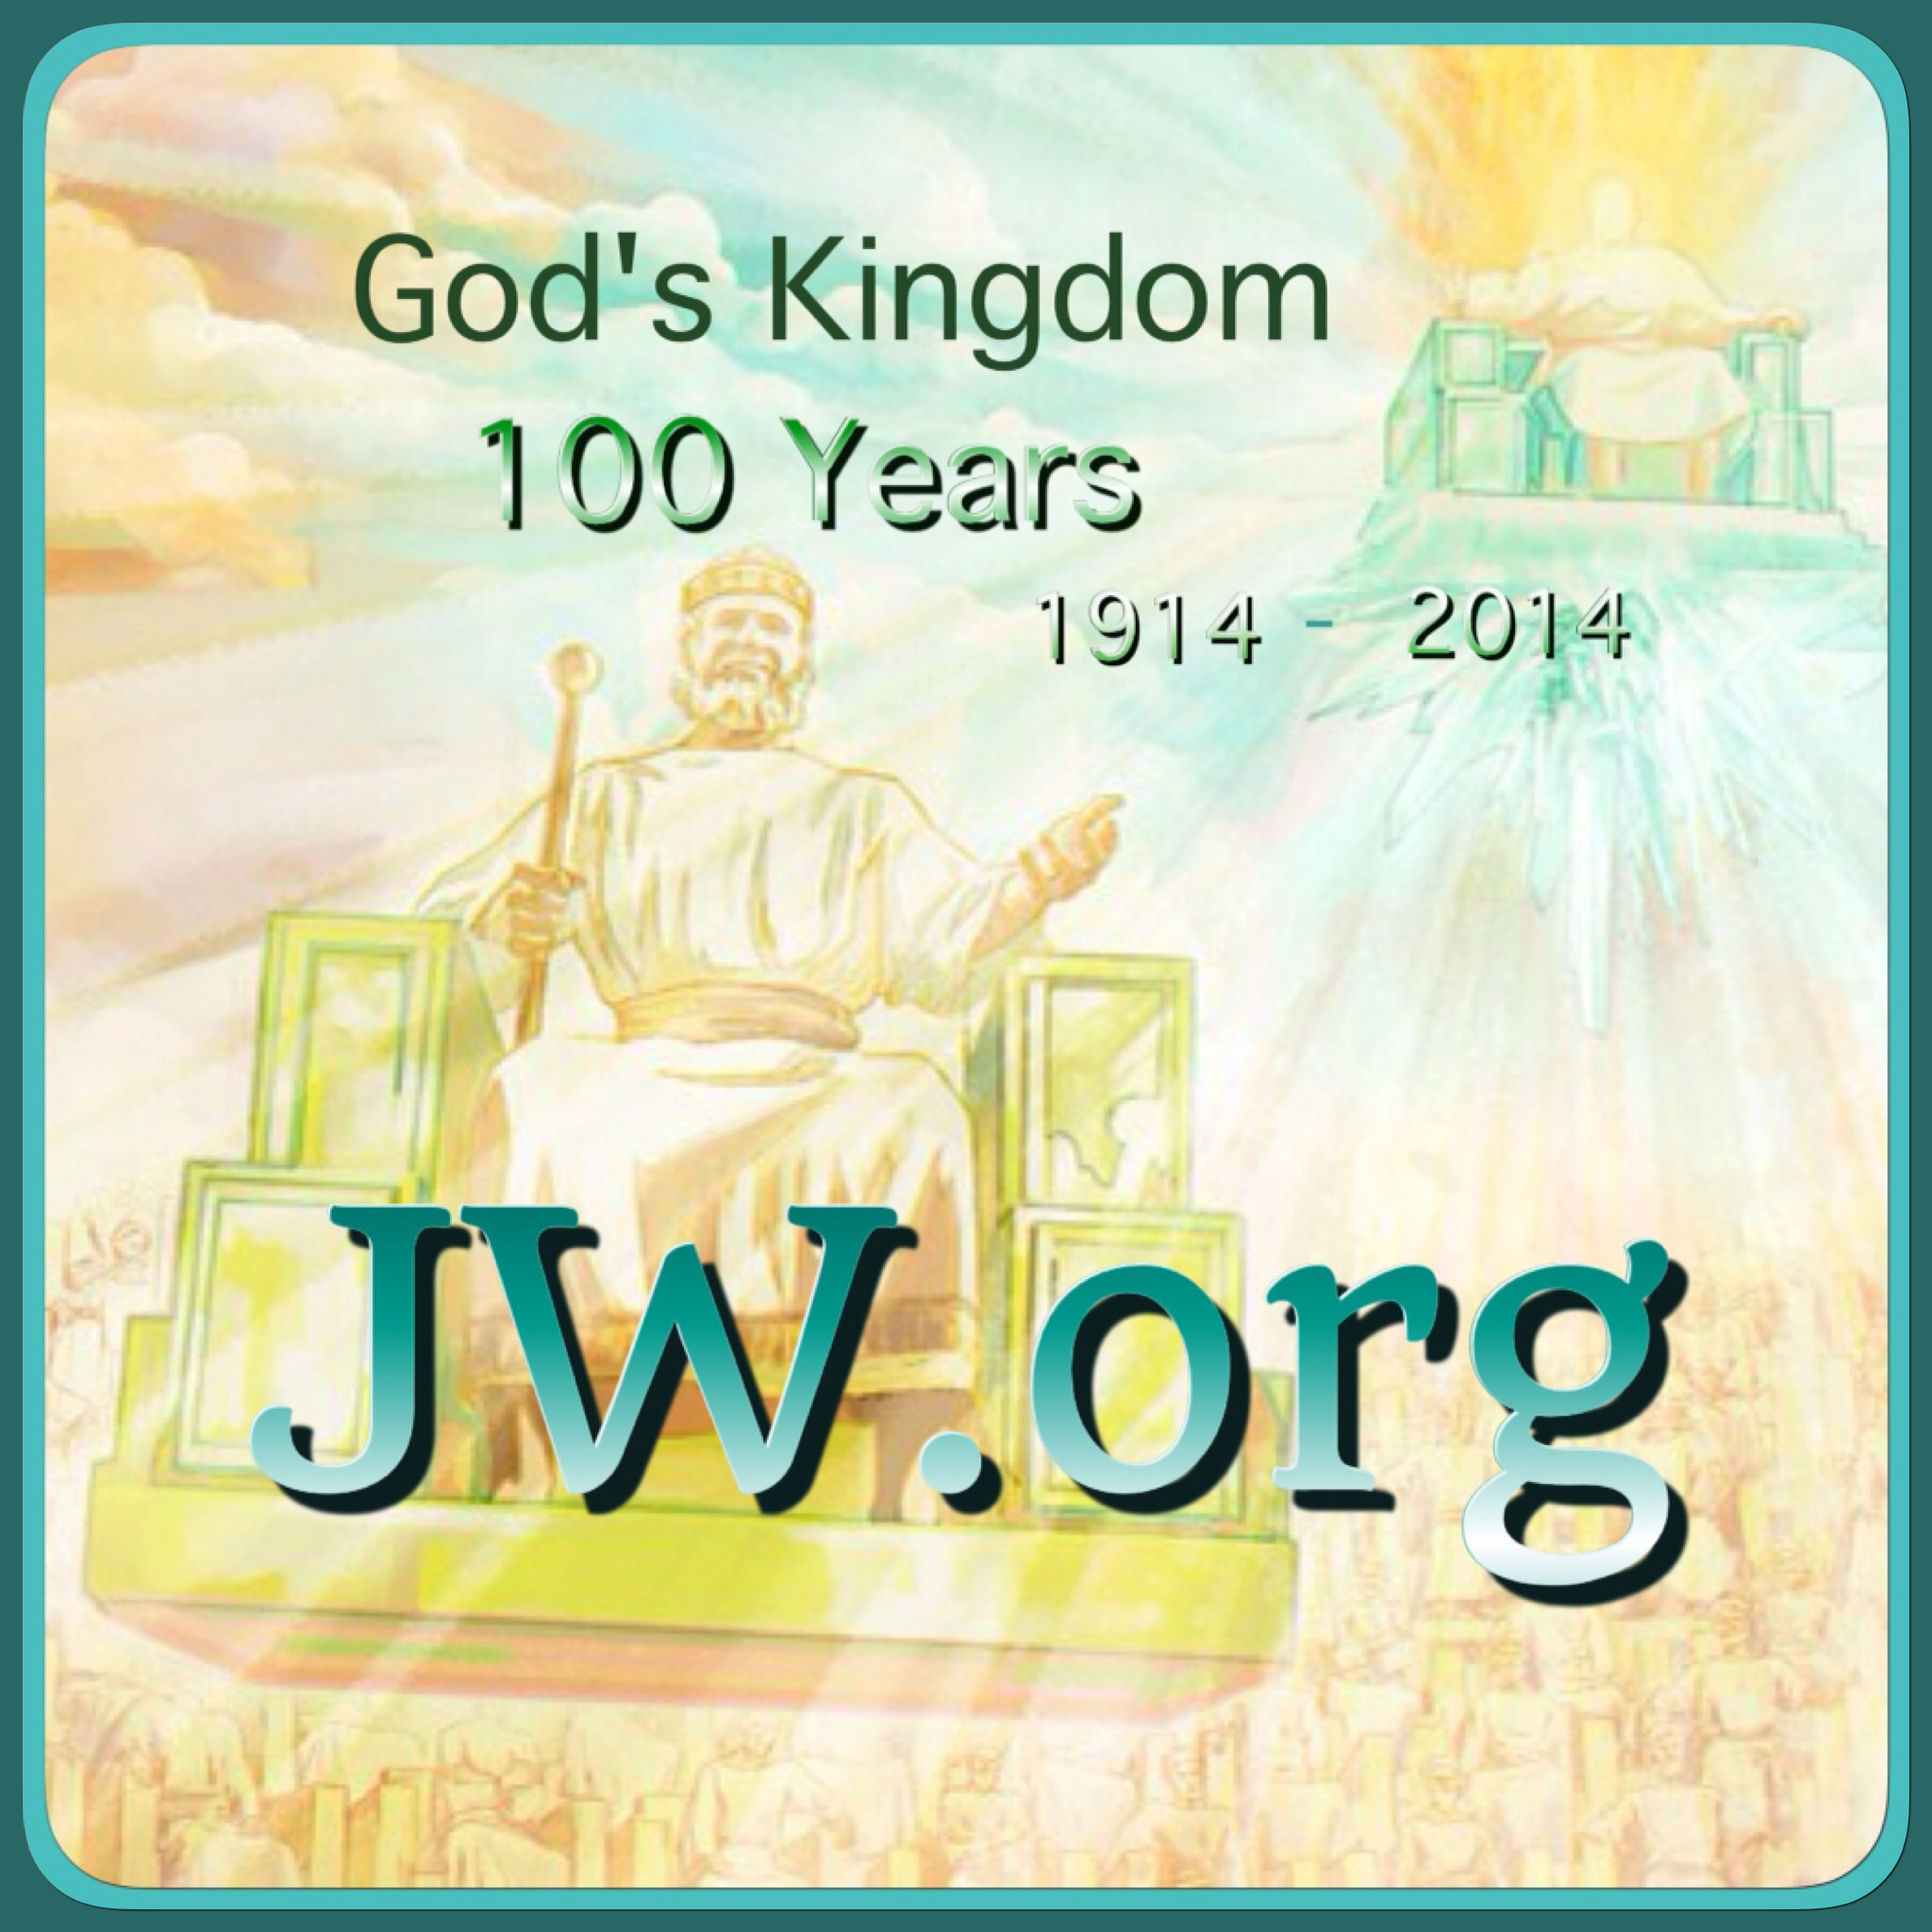 JW-org-has-the-Bible-in-languages-ASL-and-other-sign-languages-included-Also-jw-org-has-wallpaper-wp42106-1